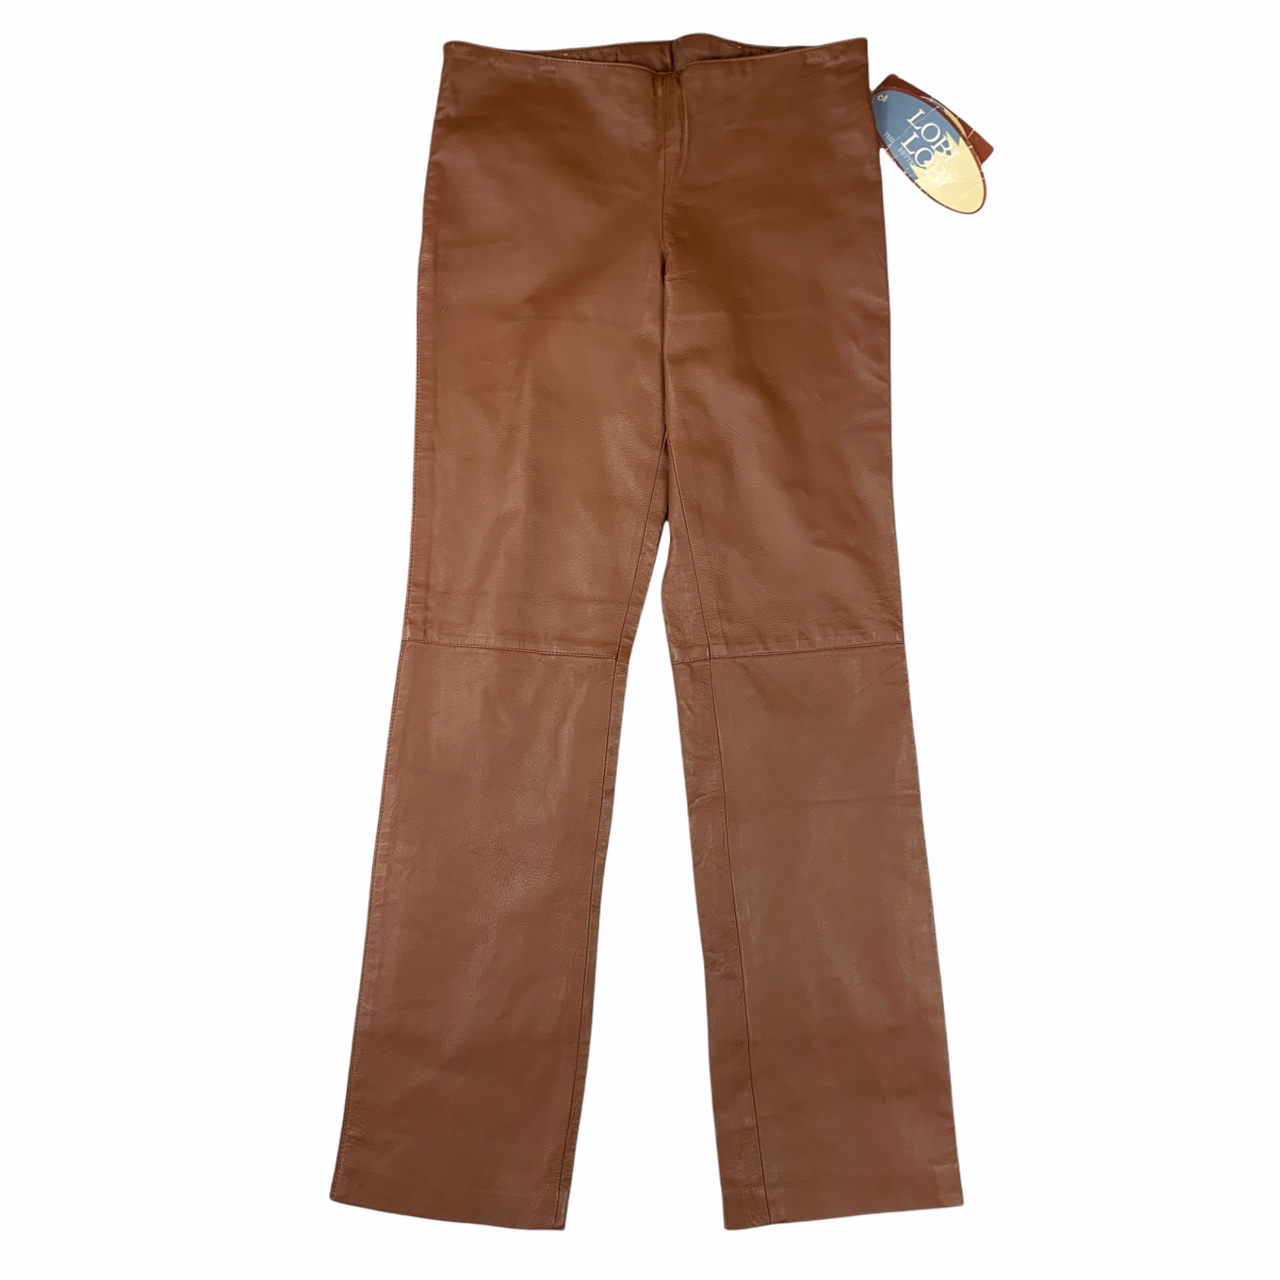 Product Image 1 - MODEL OFF DUTY PANTS  These vintage